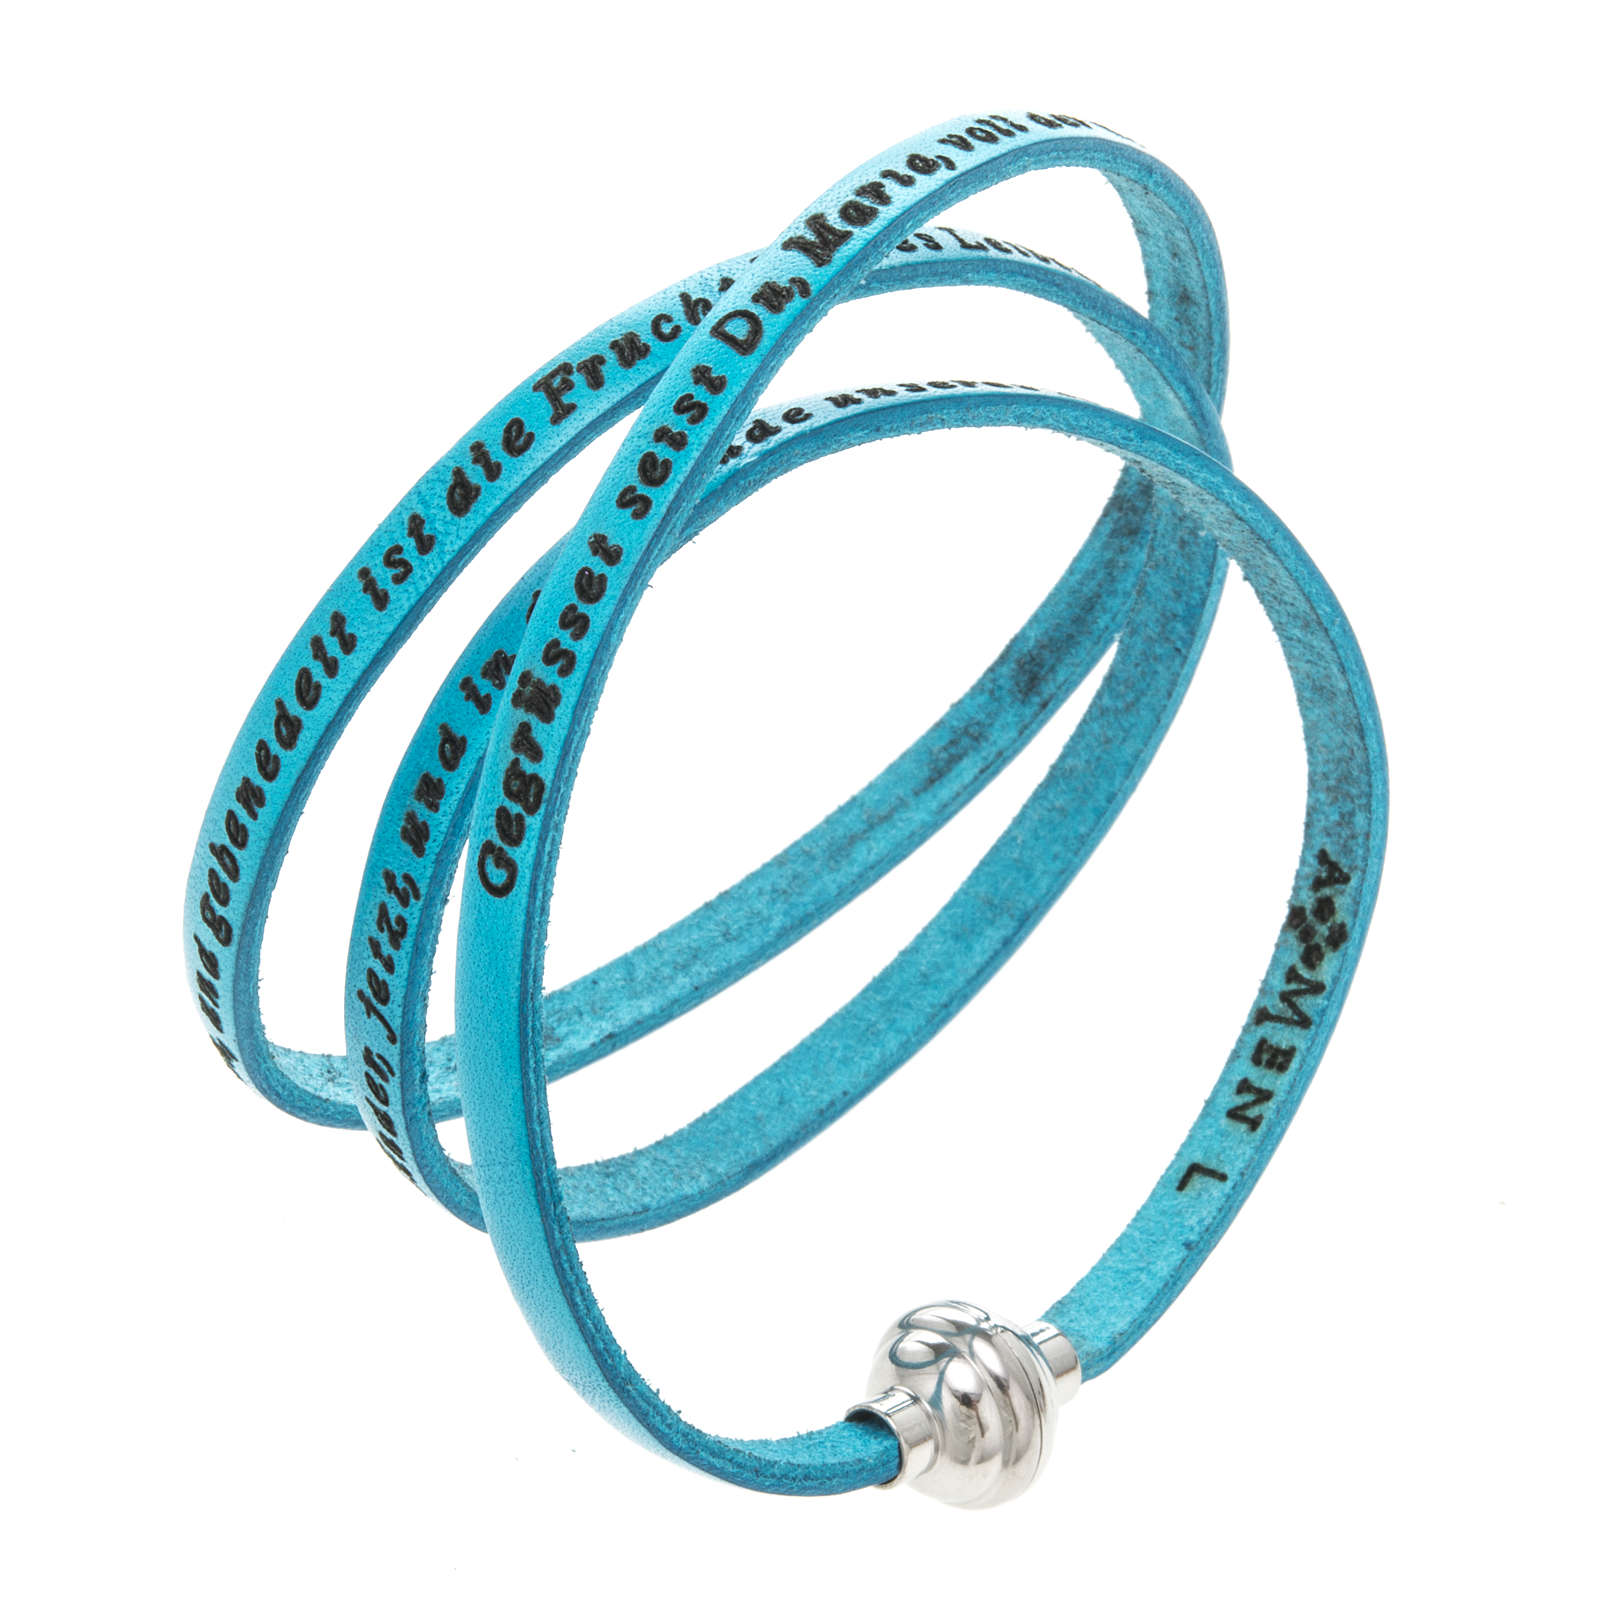 Amen Bracelet in turquoise leather Hail Mary GER 4